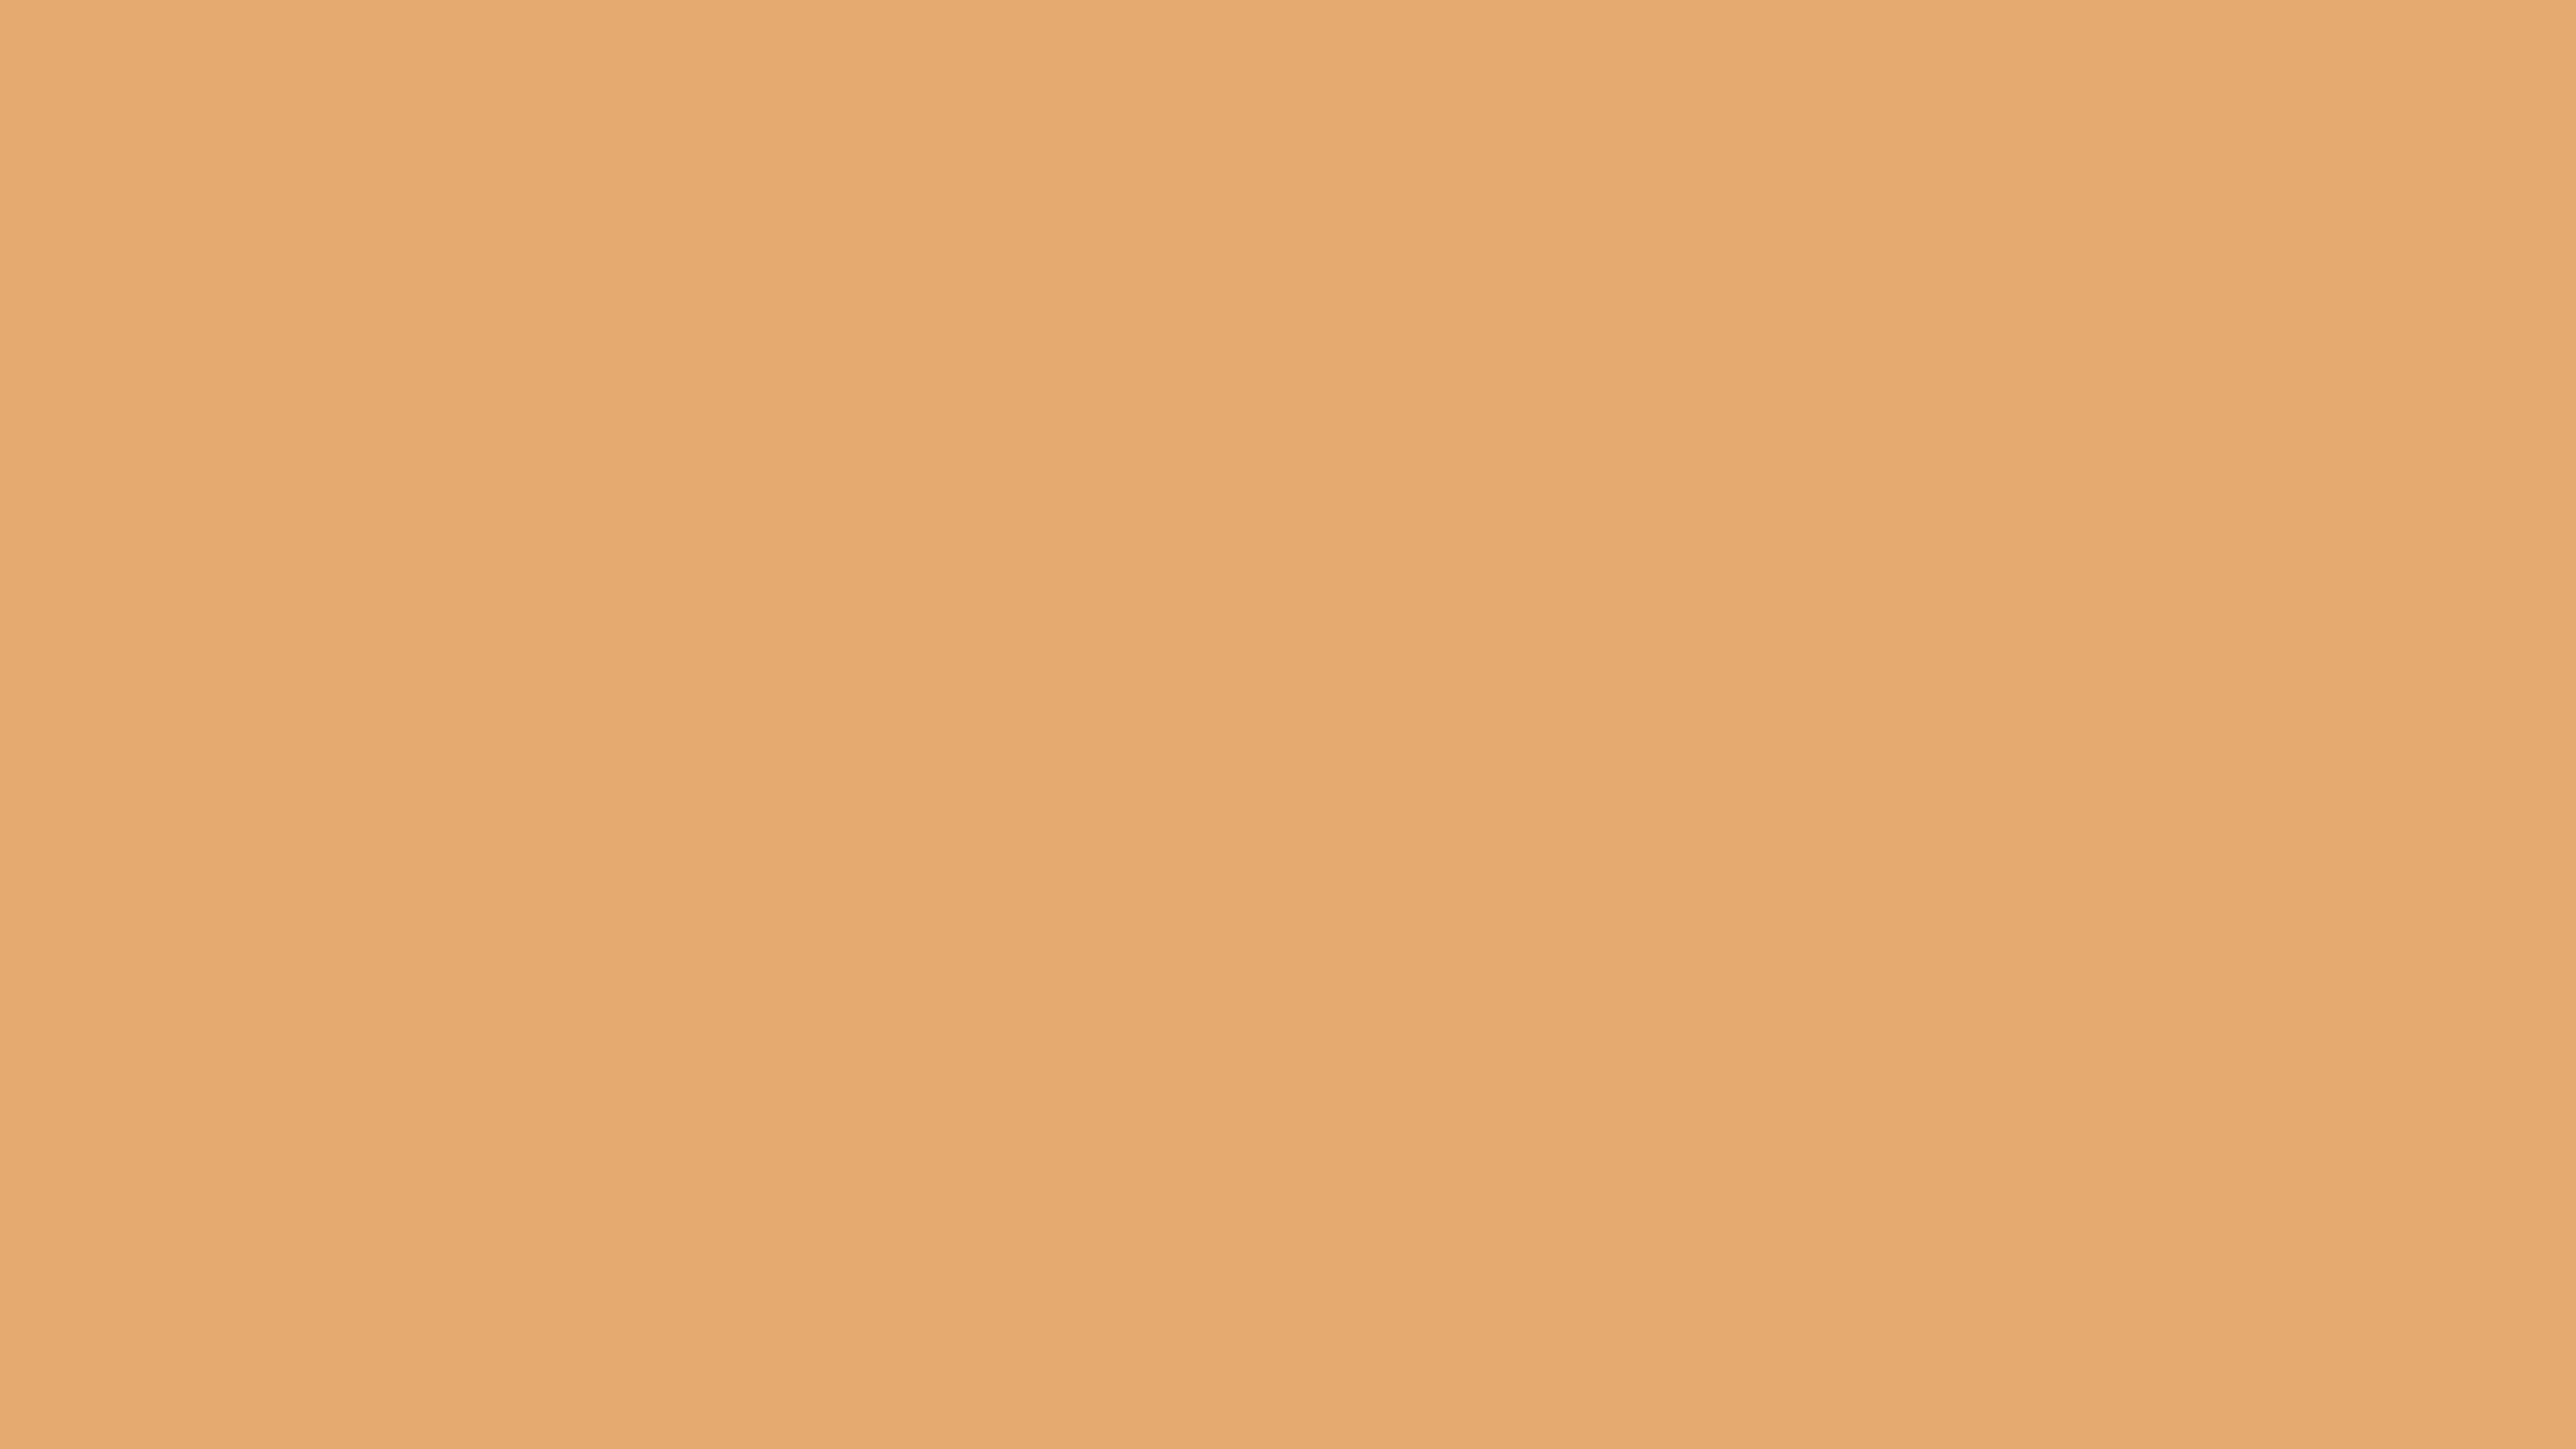 4096x2304 Fawn Solid Color Background